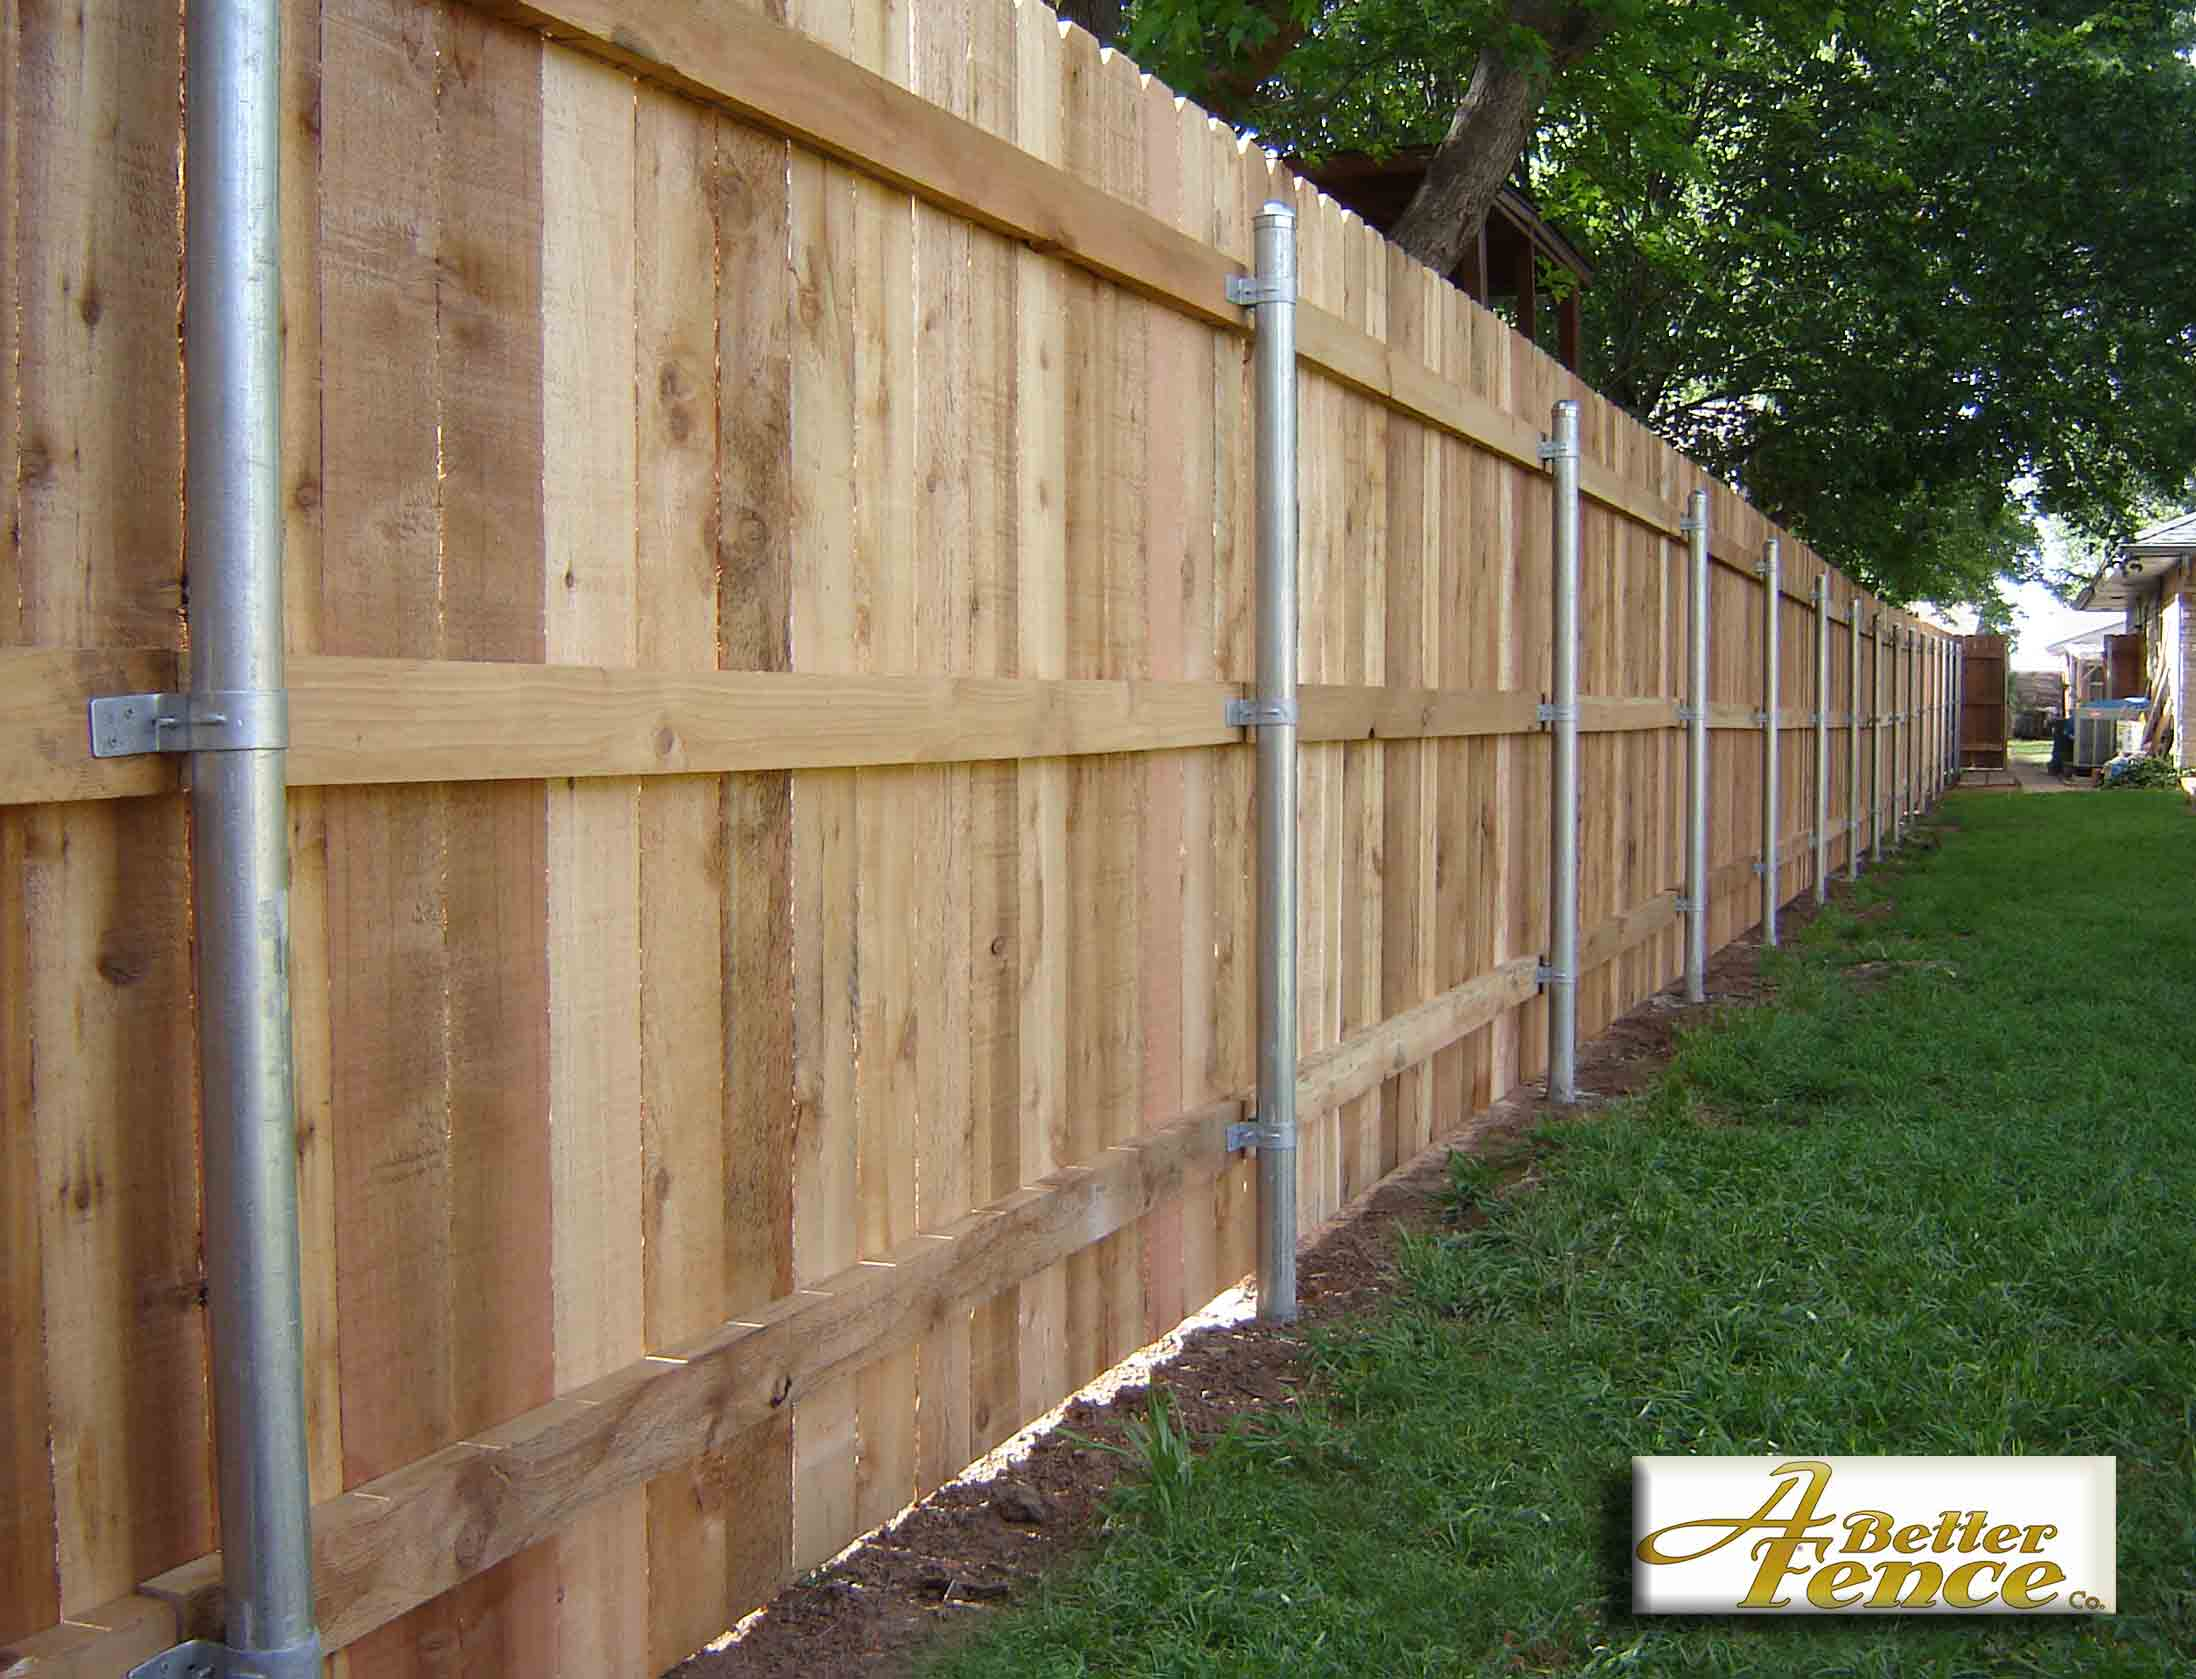 5 8 x 6 solid board western red cedar privacy fence